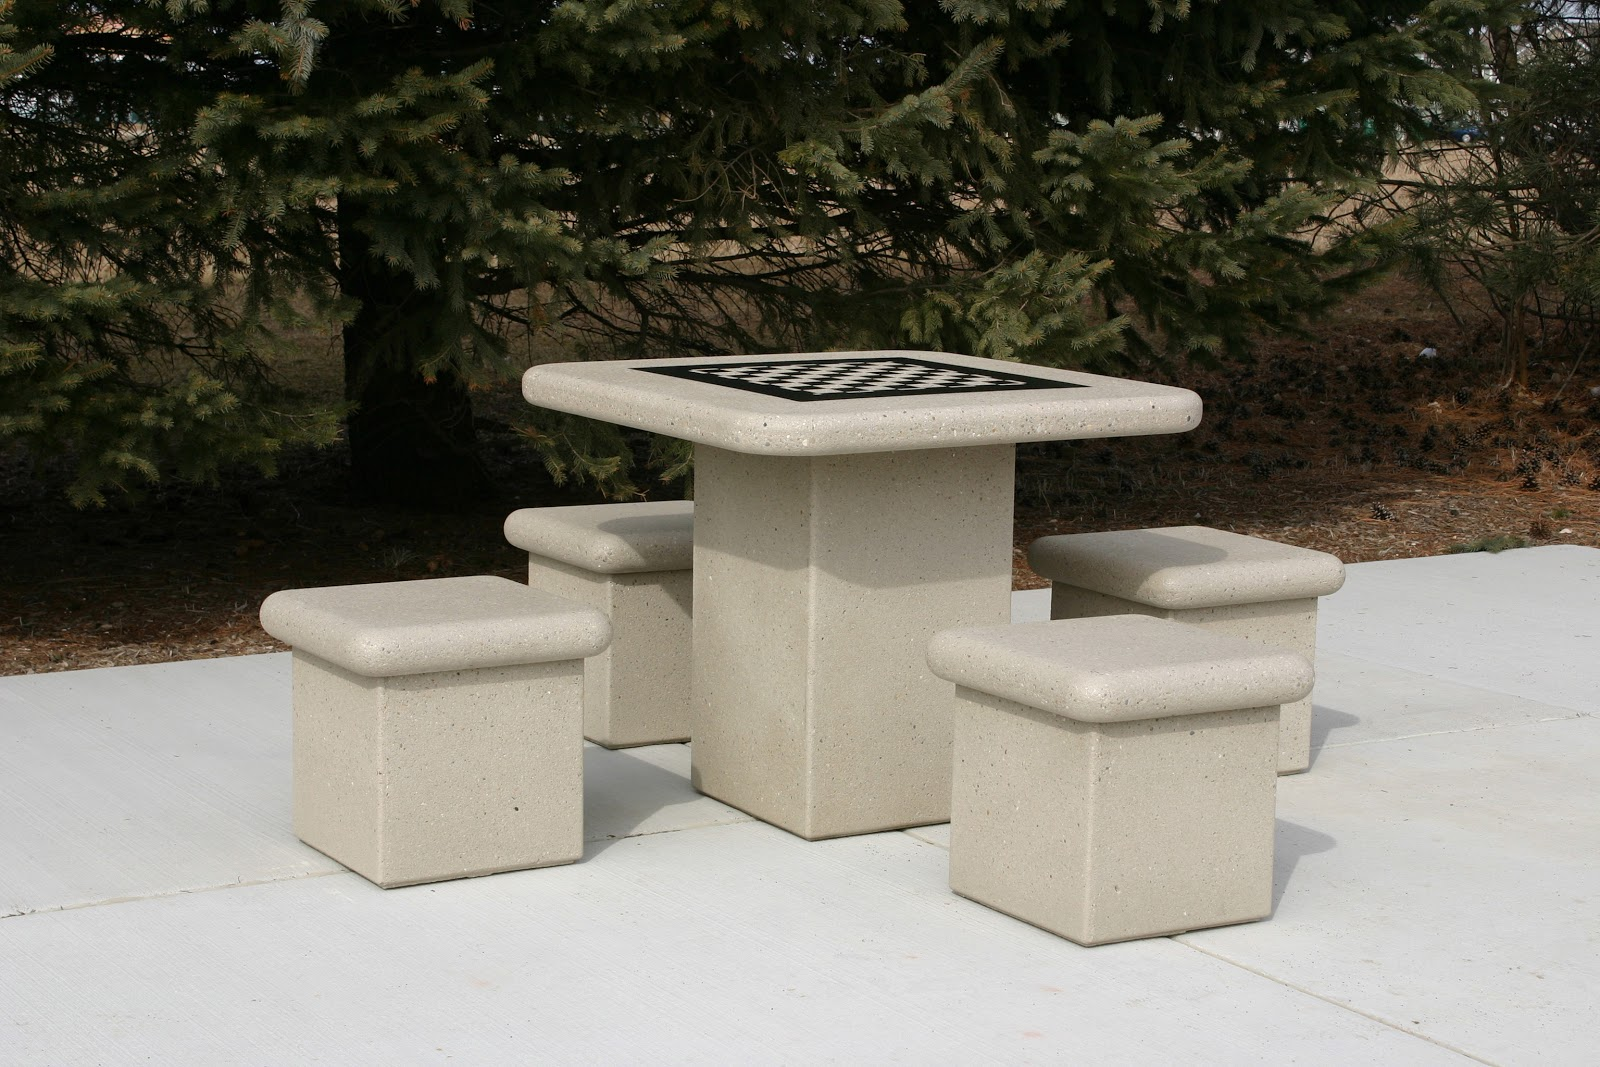 New Square Pedestal Concrete Table Set & New Square Pedestal Concrete Table Set | Doty and Sons Concrete ...